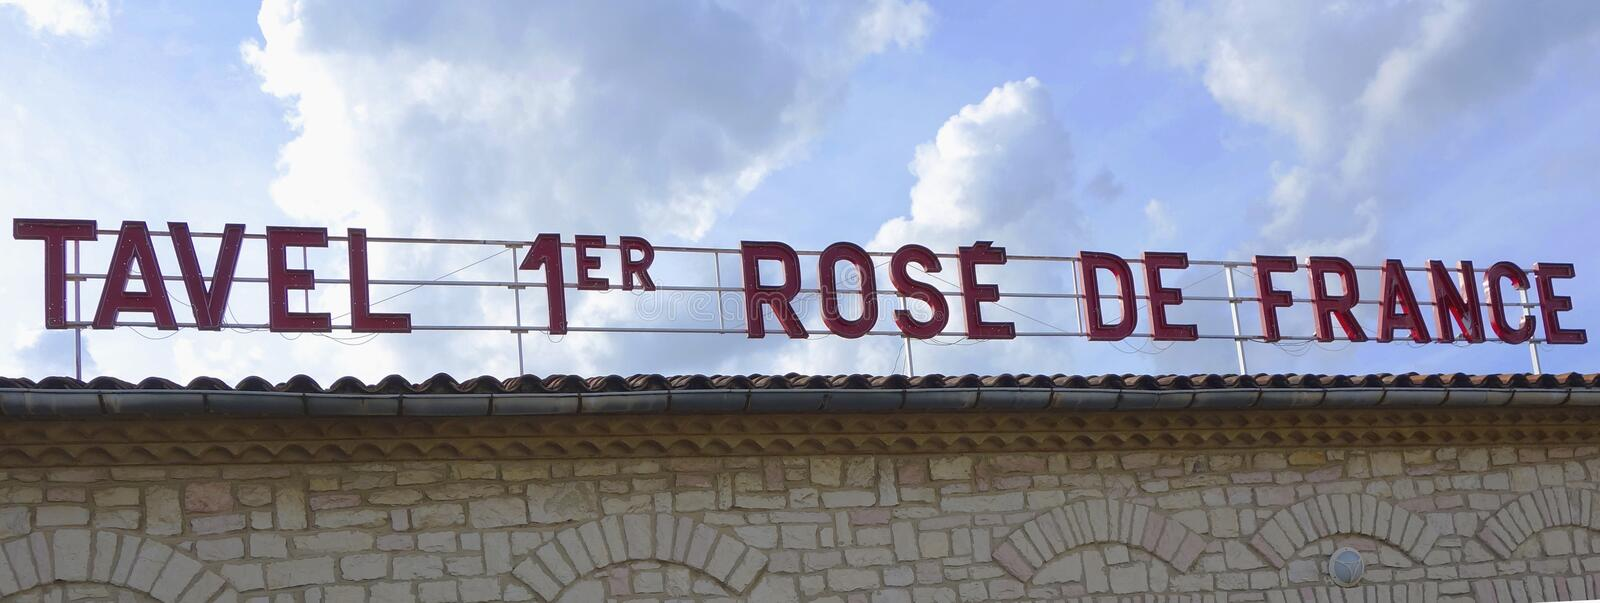 Tavel number 1 rose in France sign in Tavel, France stock photo